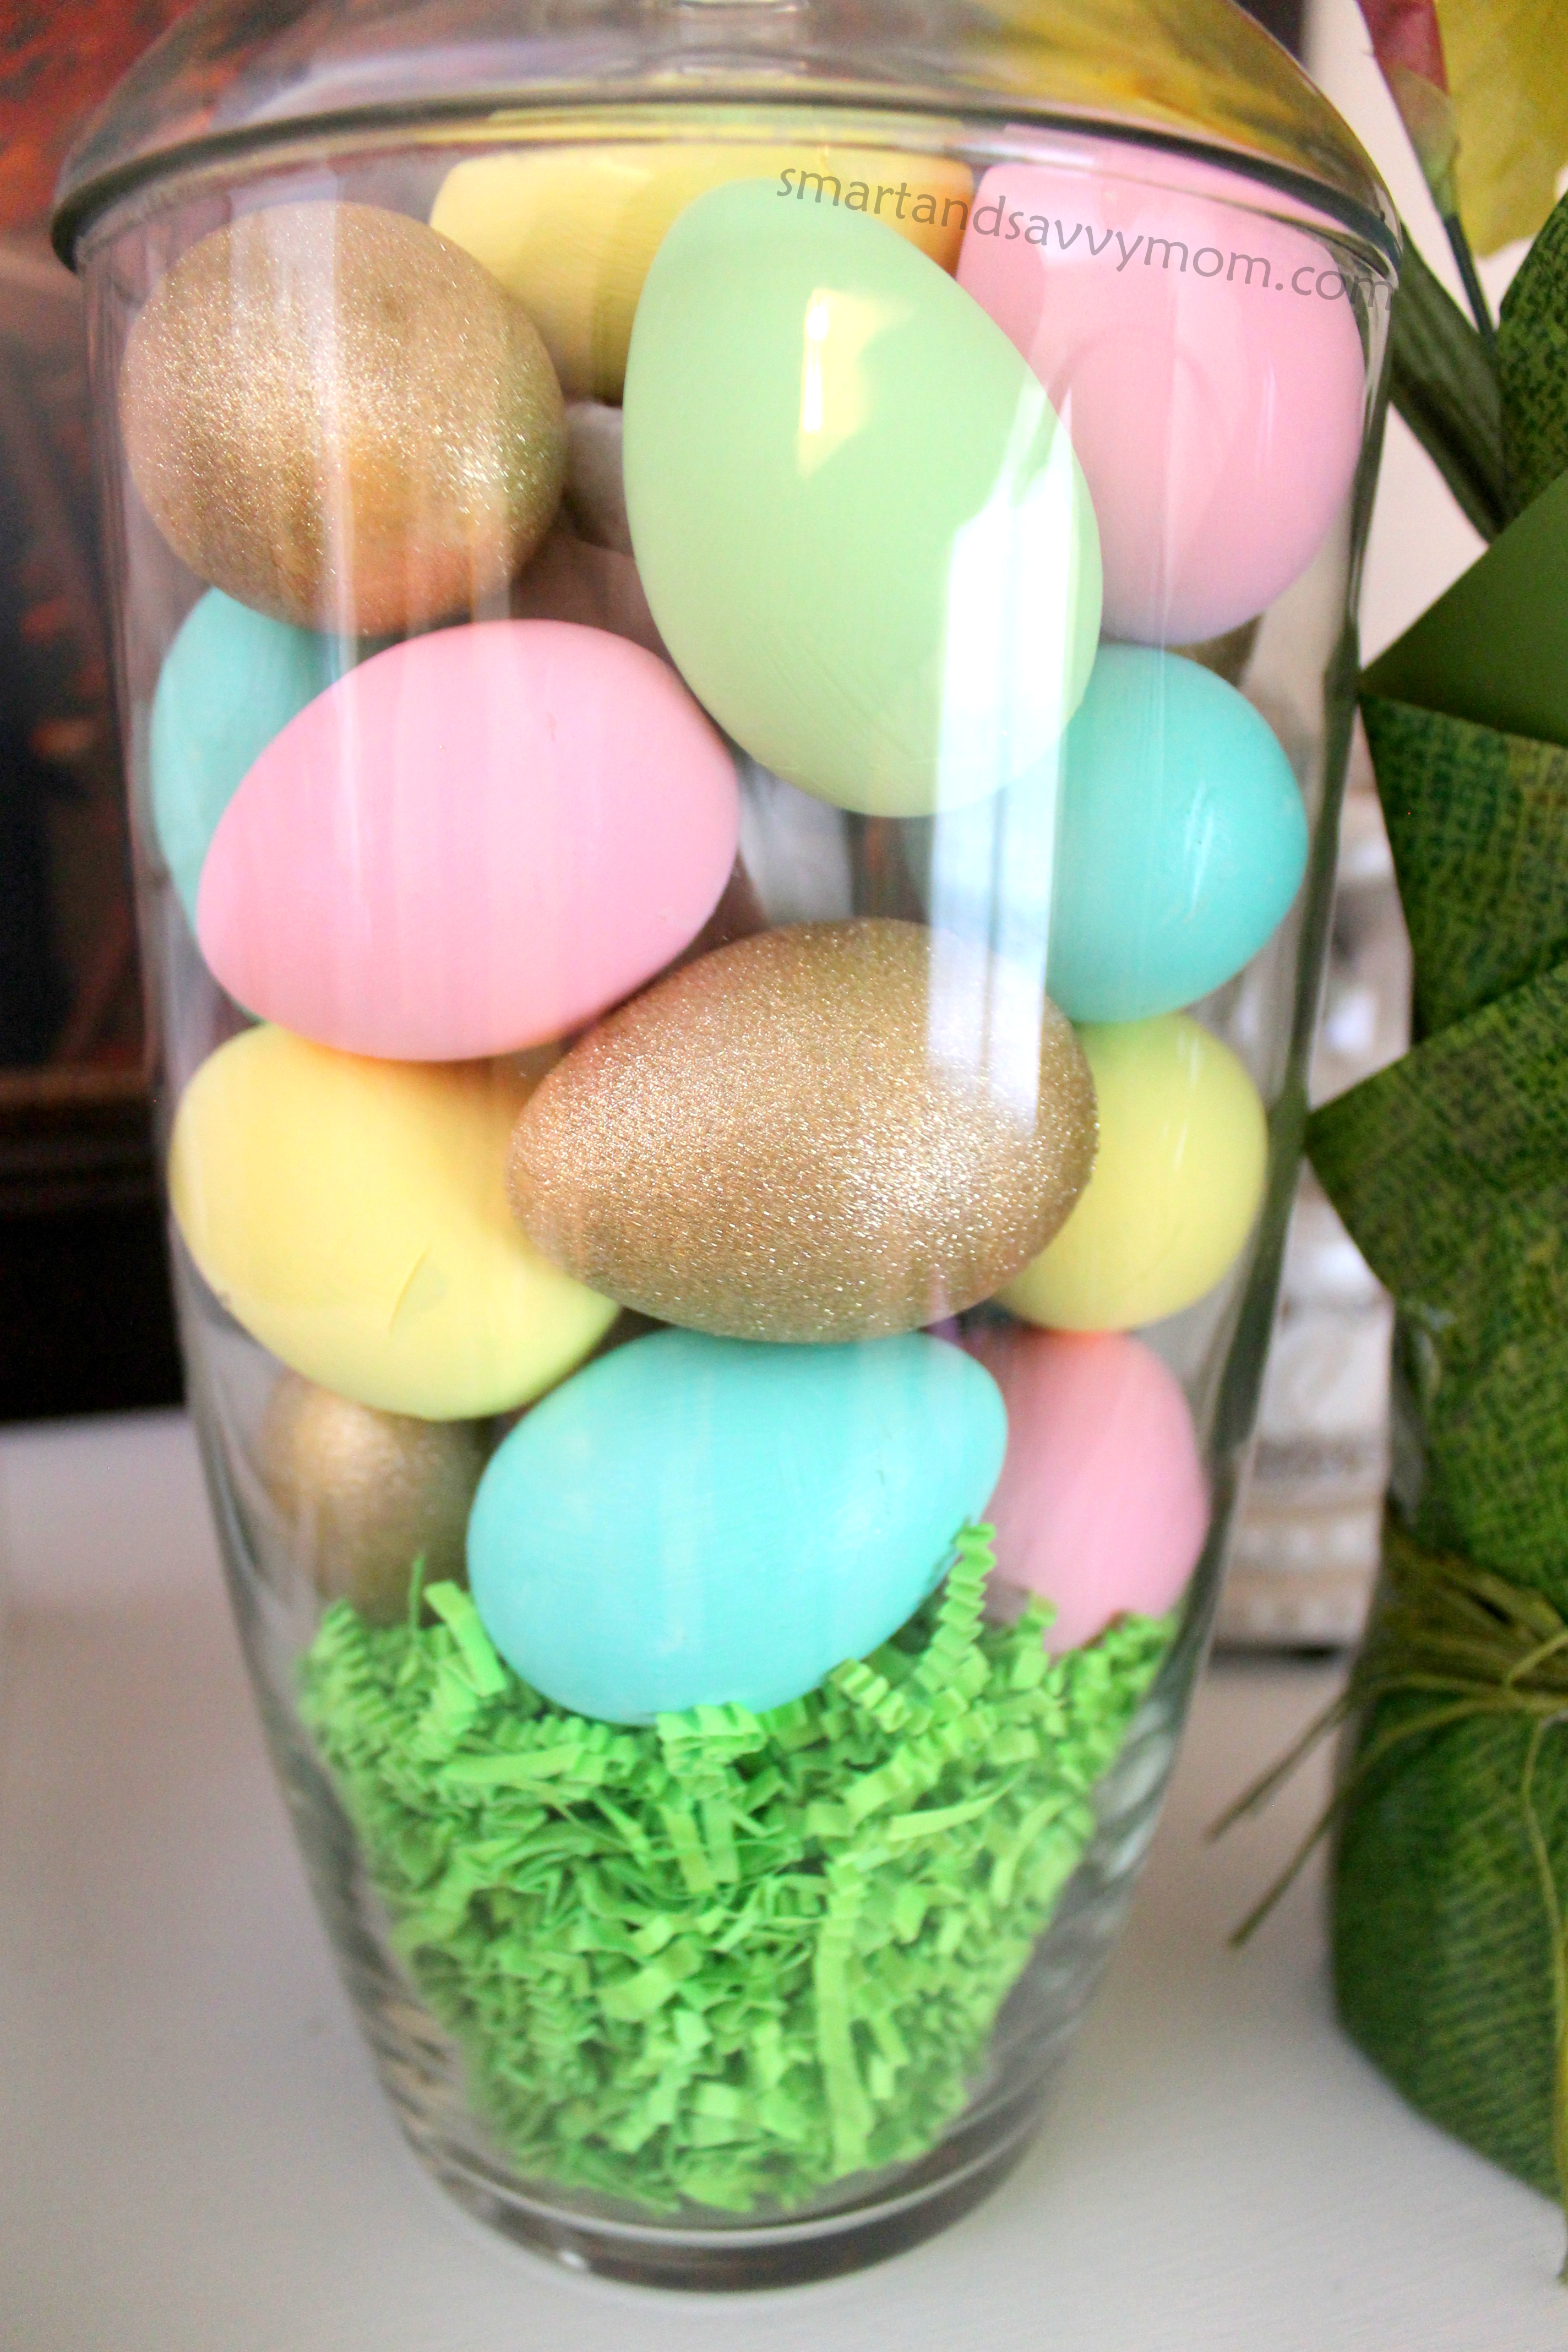 Diy easter eggs smart and savvy mom hand painted easter eggs do it yourself easter egg decoration solutioingenieria Images